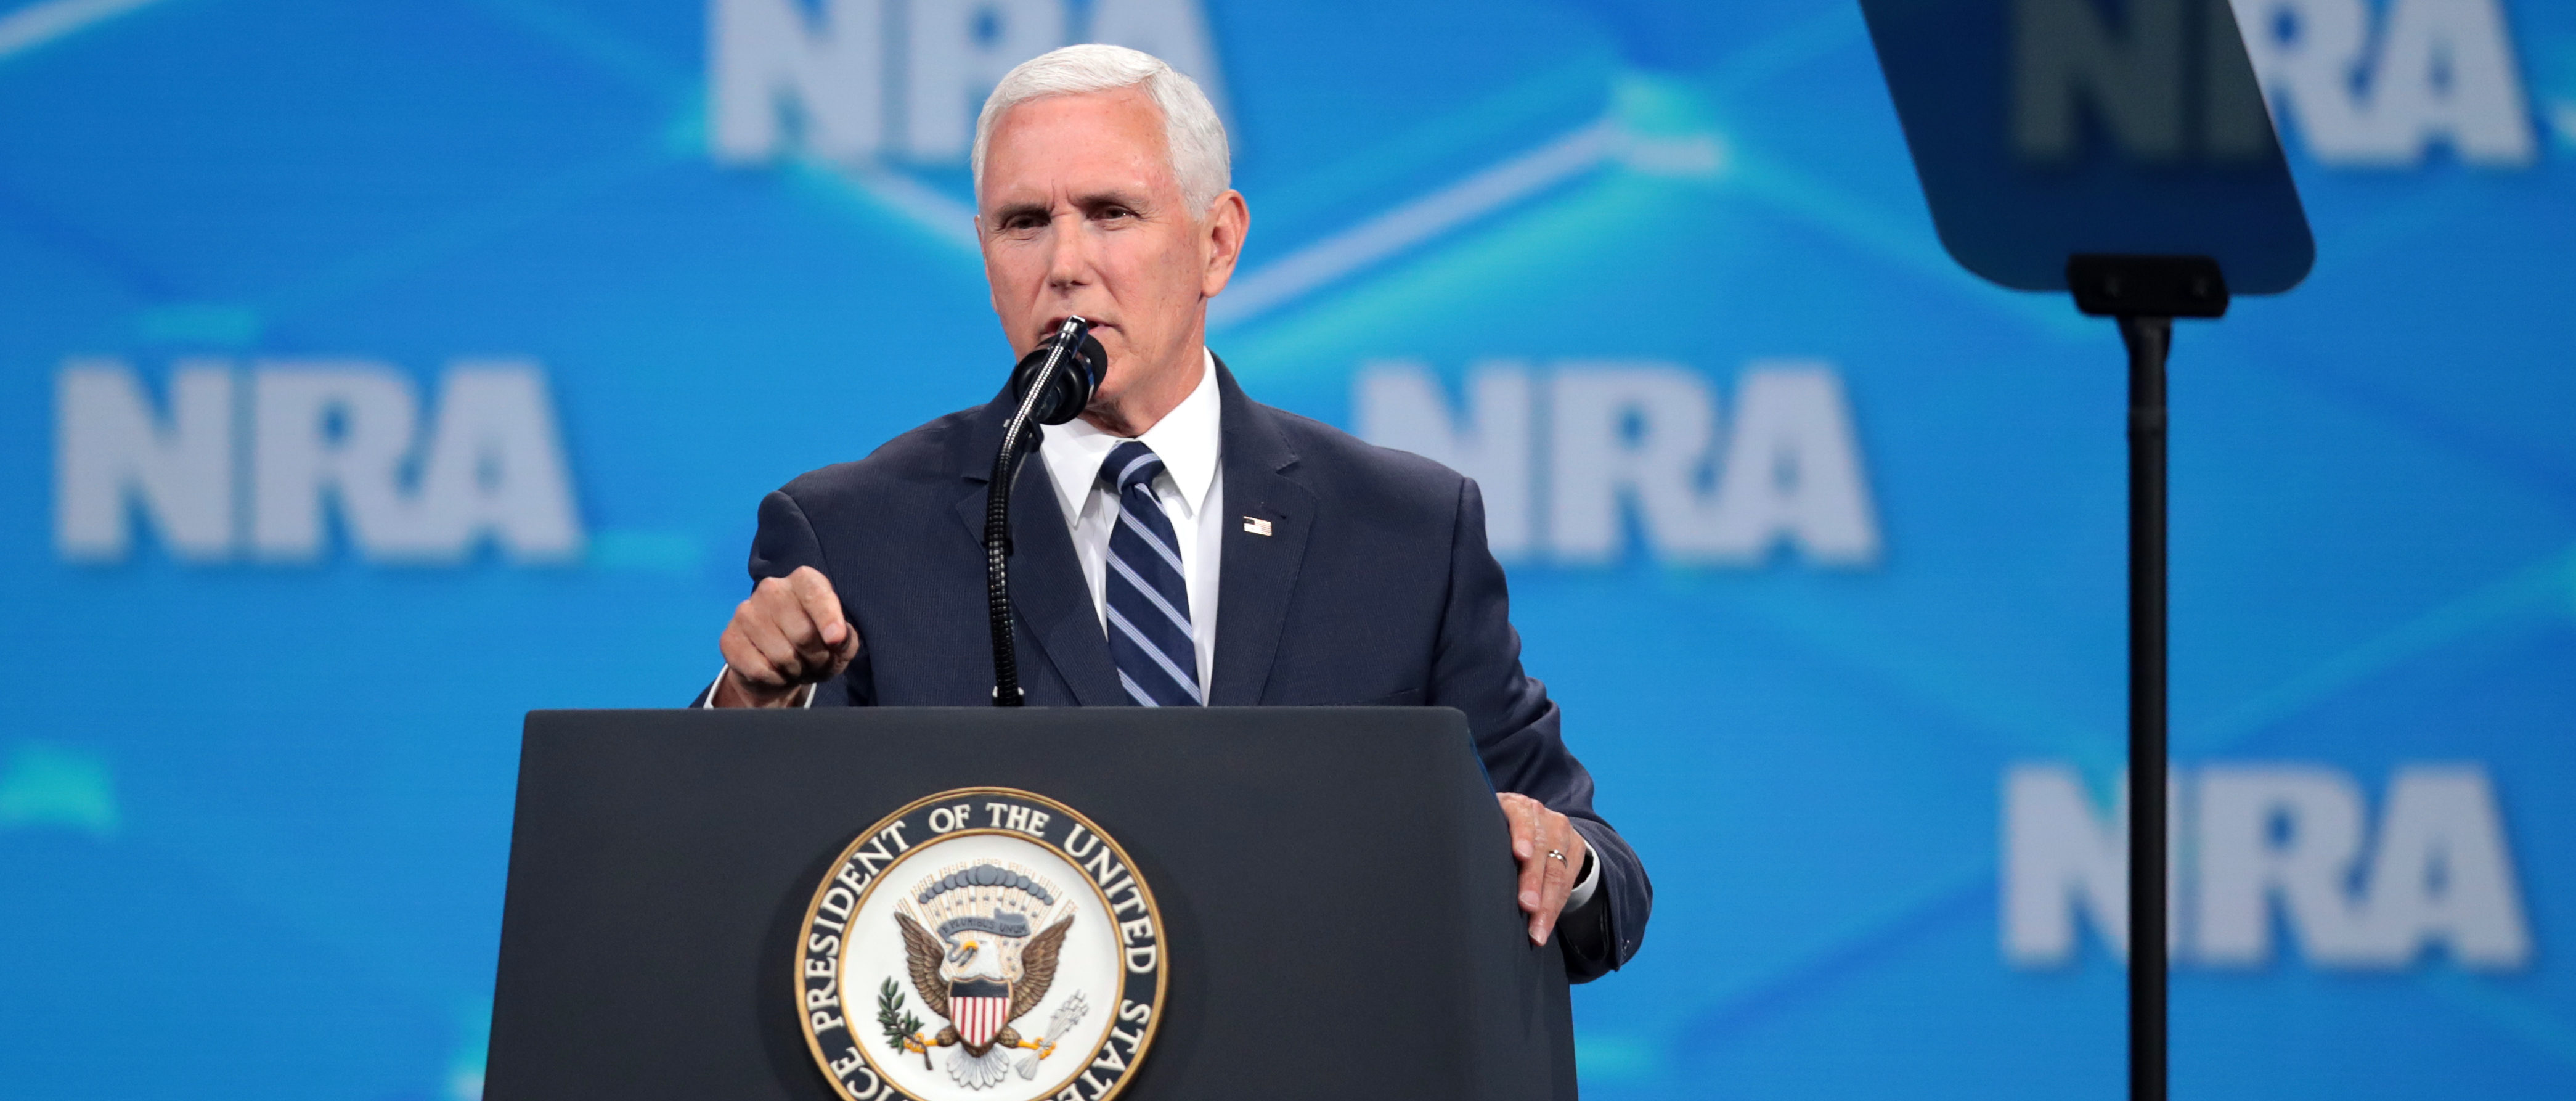 INDIANAPOLIS, INDIANA - APRIL 26: U.S. Vice President Mike Pence delivers remarks during the NRA-ILA Leadership Forum at the 148th NRA Annual Meetings & Exhibits on April 26, 2019 in Indianapolis, Indiana. The convention, which runs through Sunday, features more than 800 exhibitors and is expected to draw 80,000 guests. (Photo by Scott Olson/Getty Images)